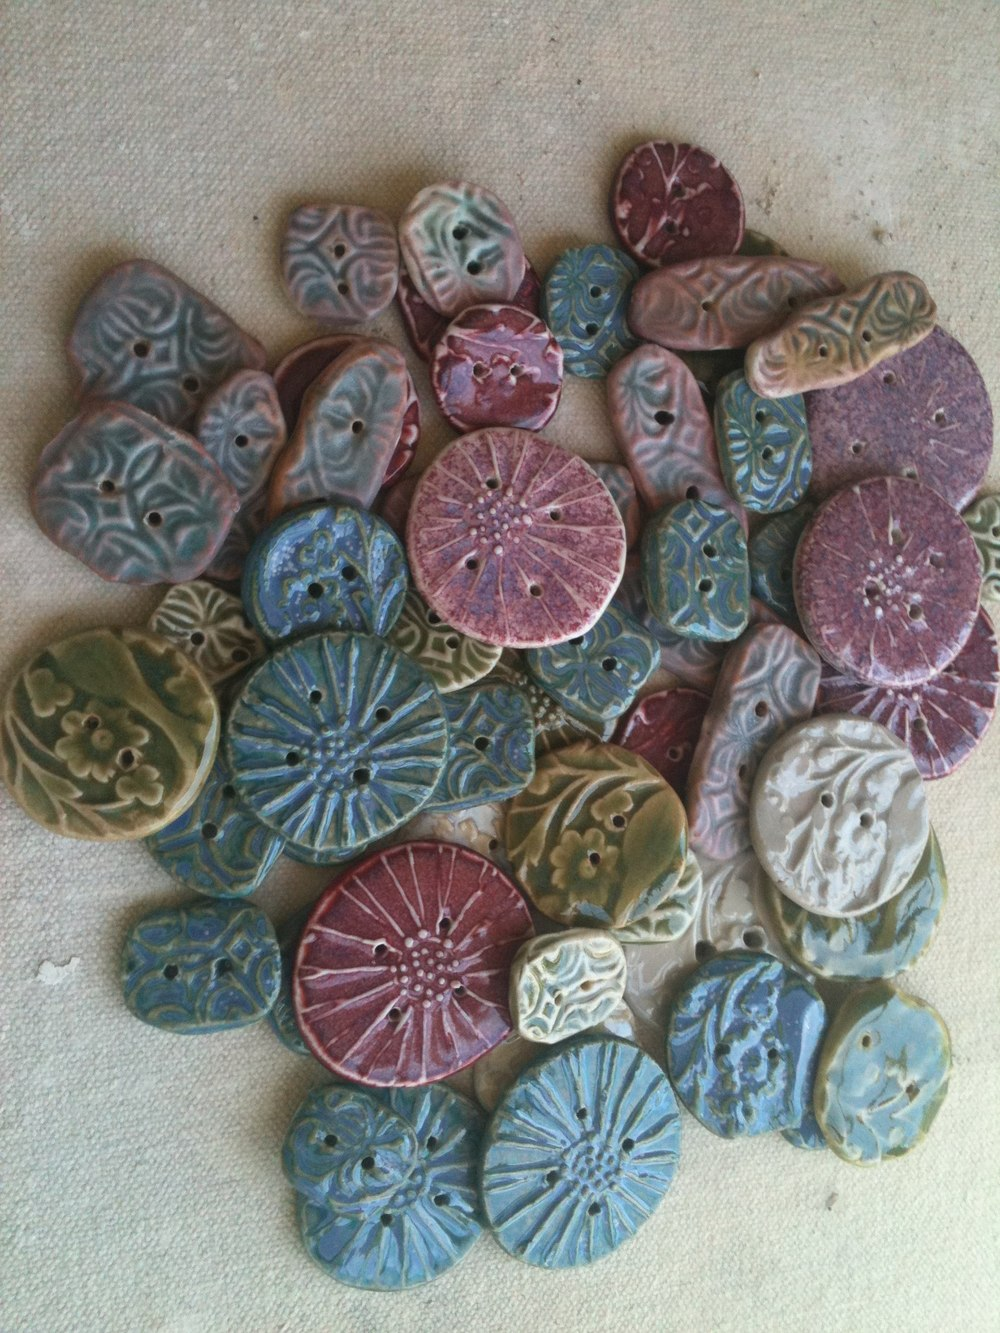 Porcelain buttons